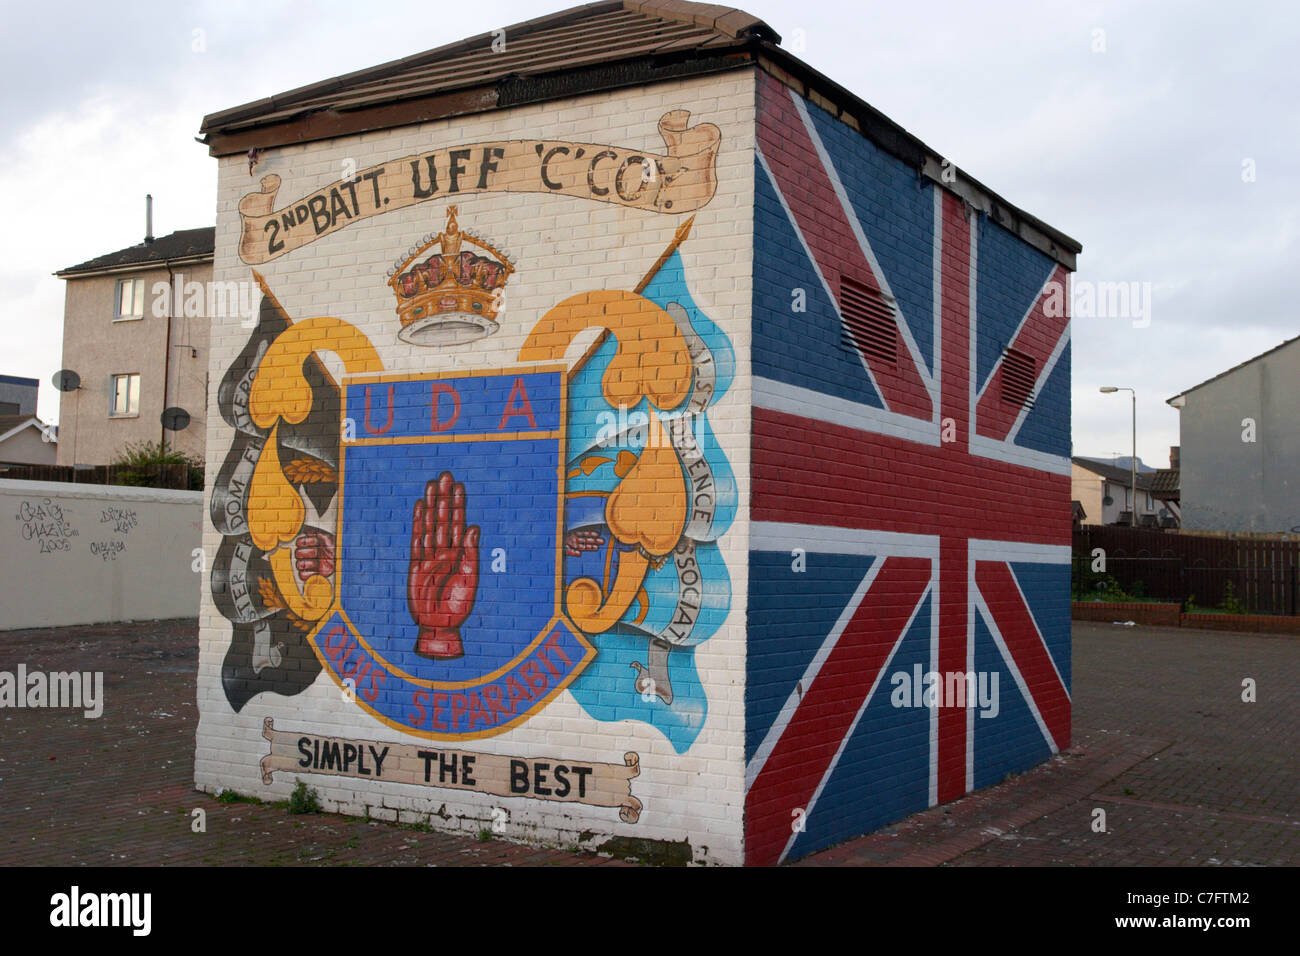 Uda uff shankill road loyalist wall mural painting west for Mural belfast